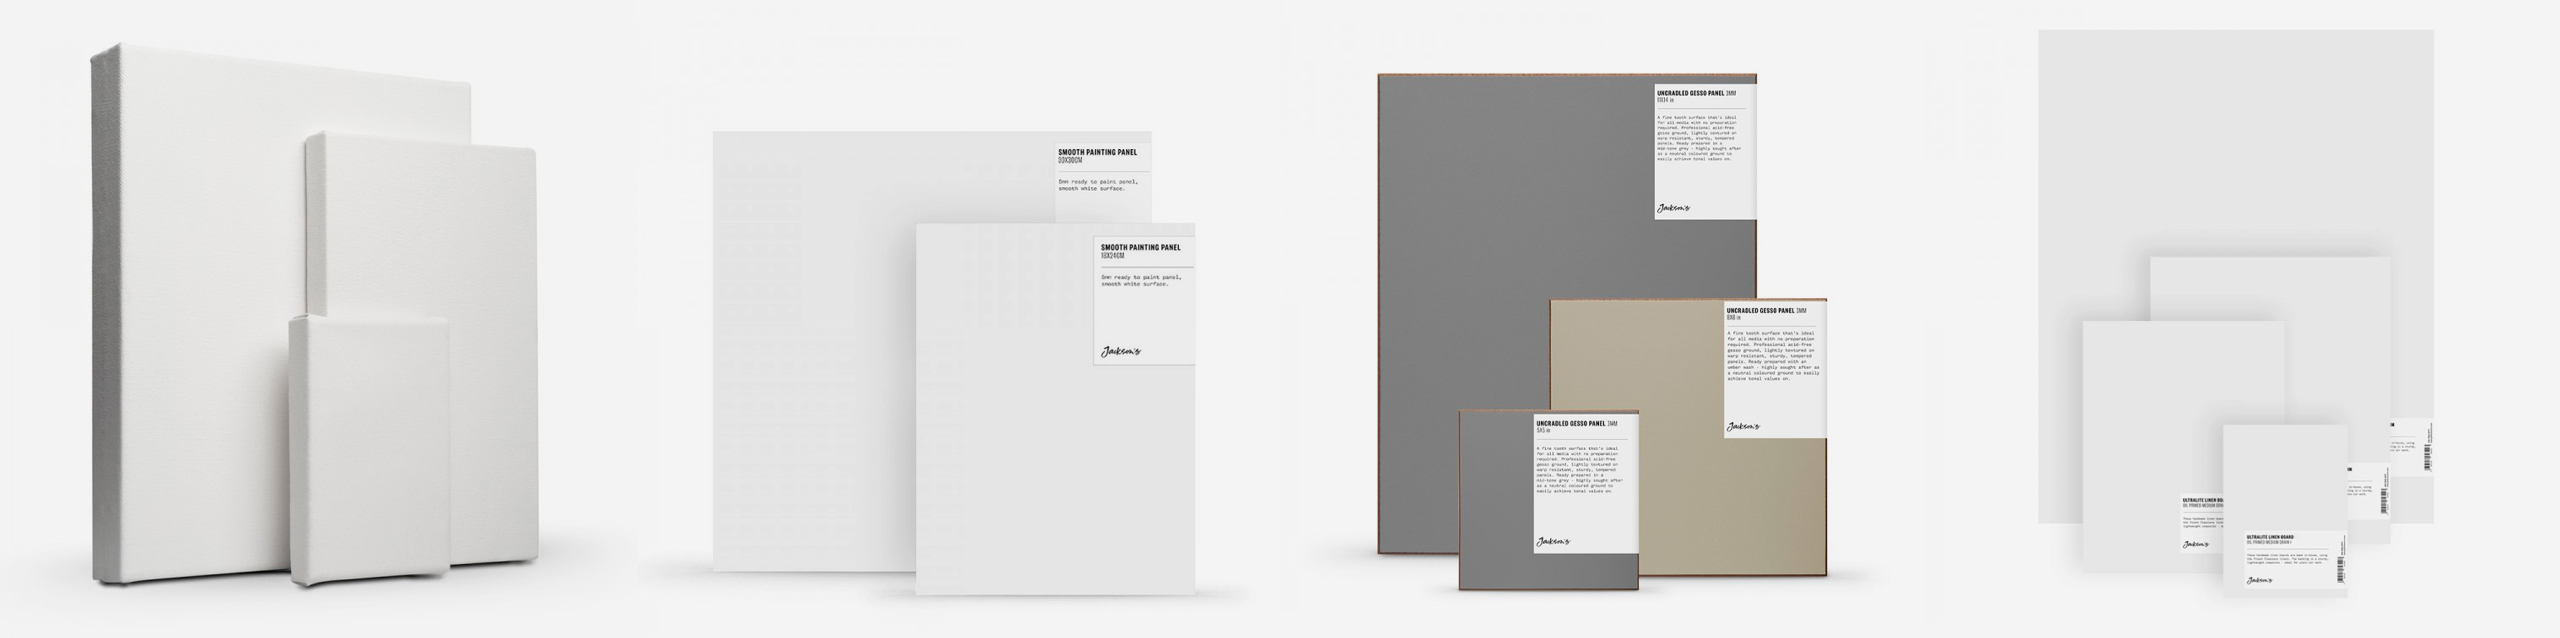 L-R: Jackson's Premium Stretched Cotton Canvas, Jackson's Smooth Painting Panel, Jackson's Uncradled Gesso Panel in Umber/Grey, Jackson's Ultralite Linen Boards